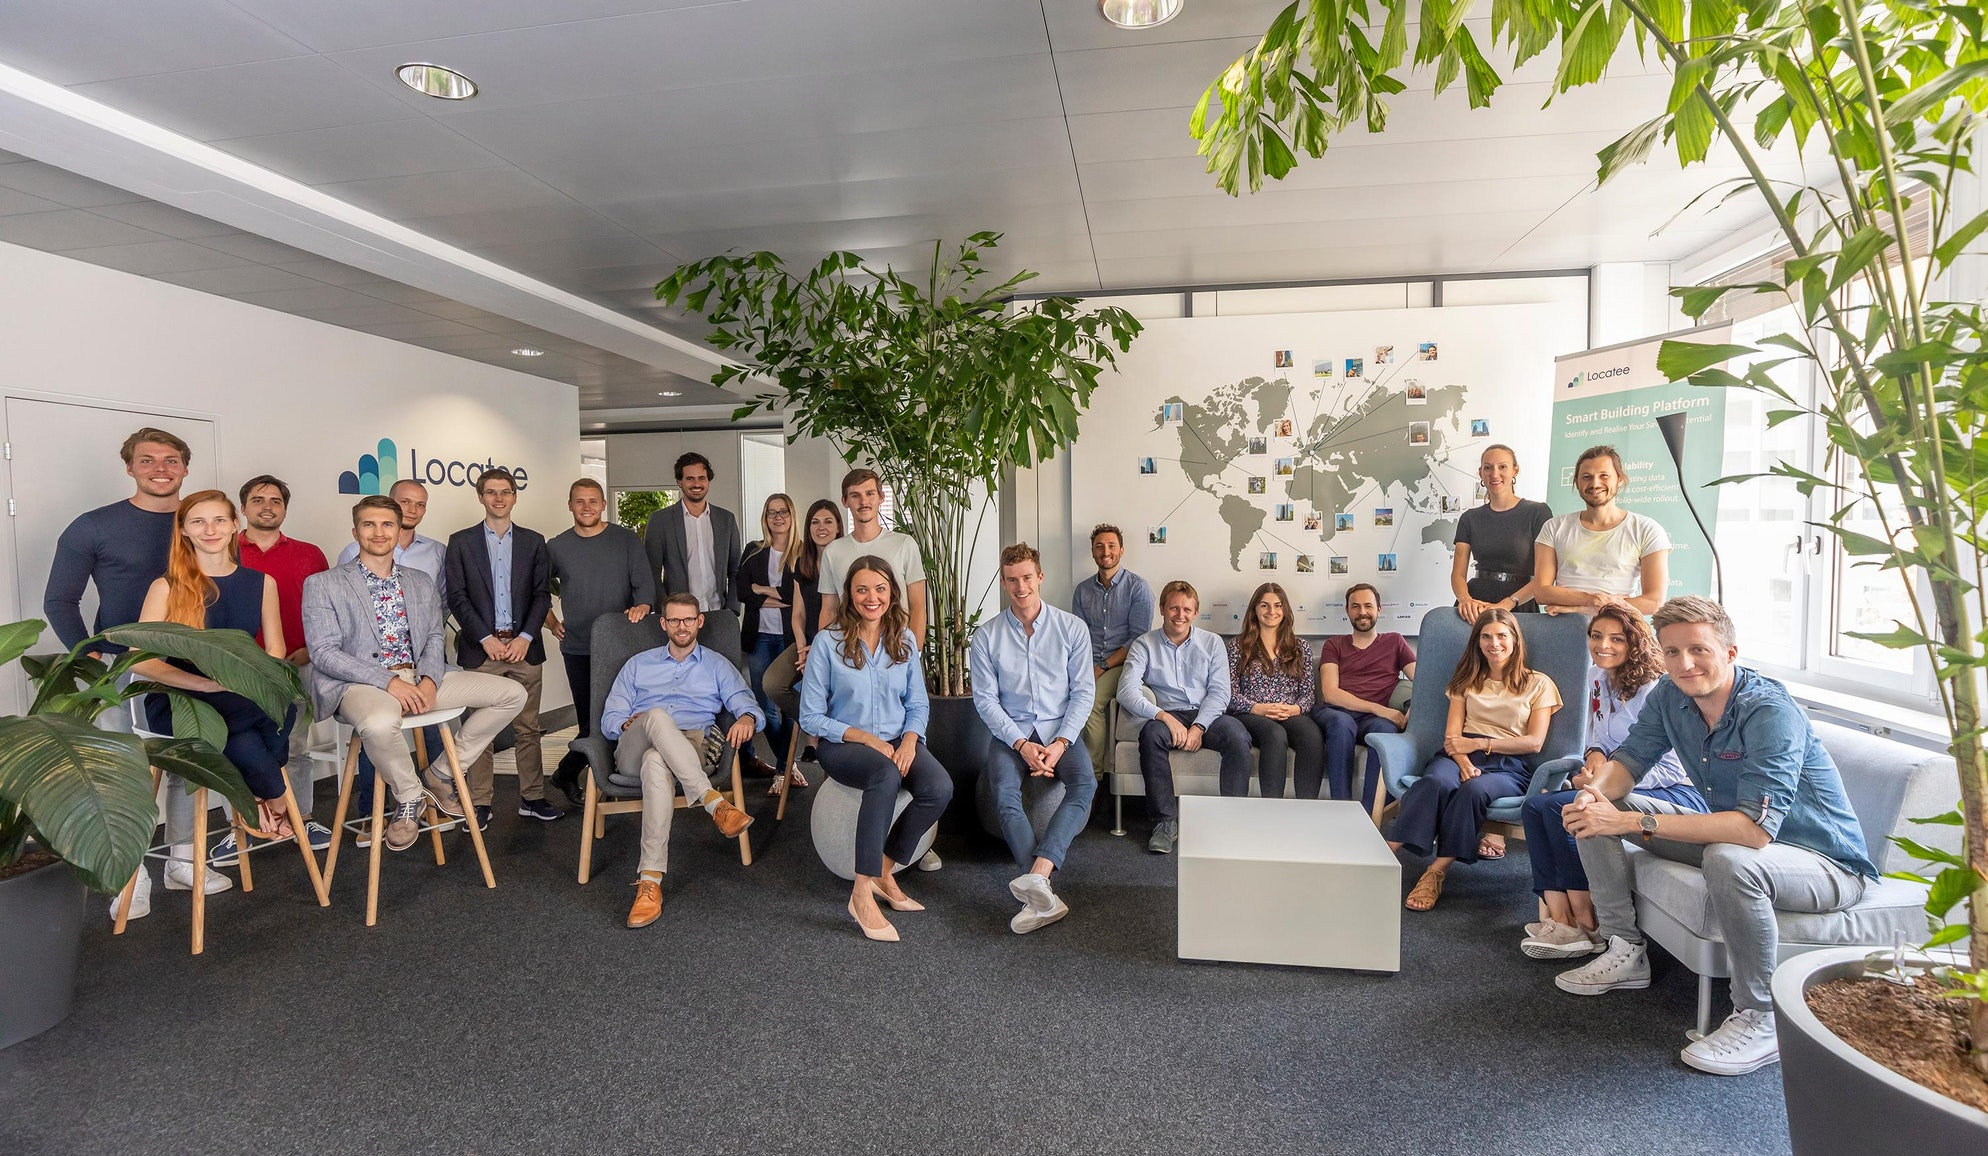 Locatee secures $4M Series A financing round